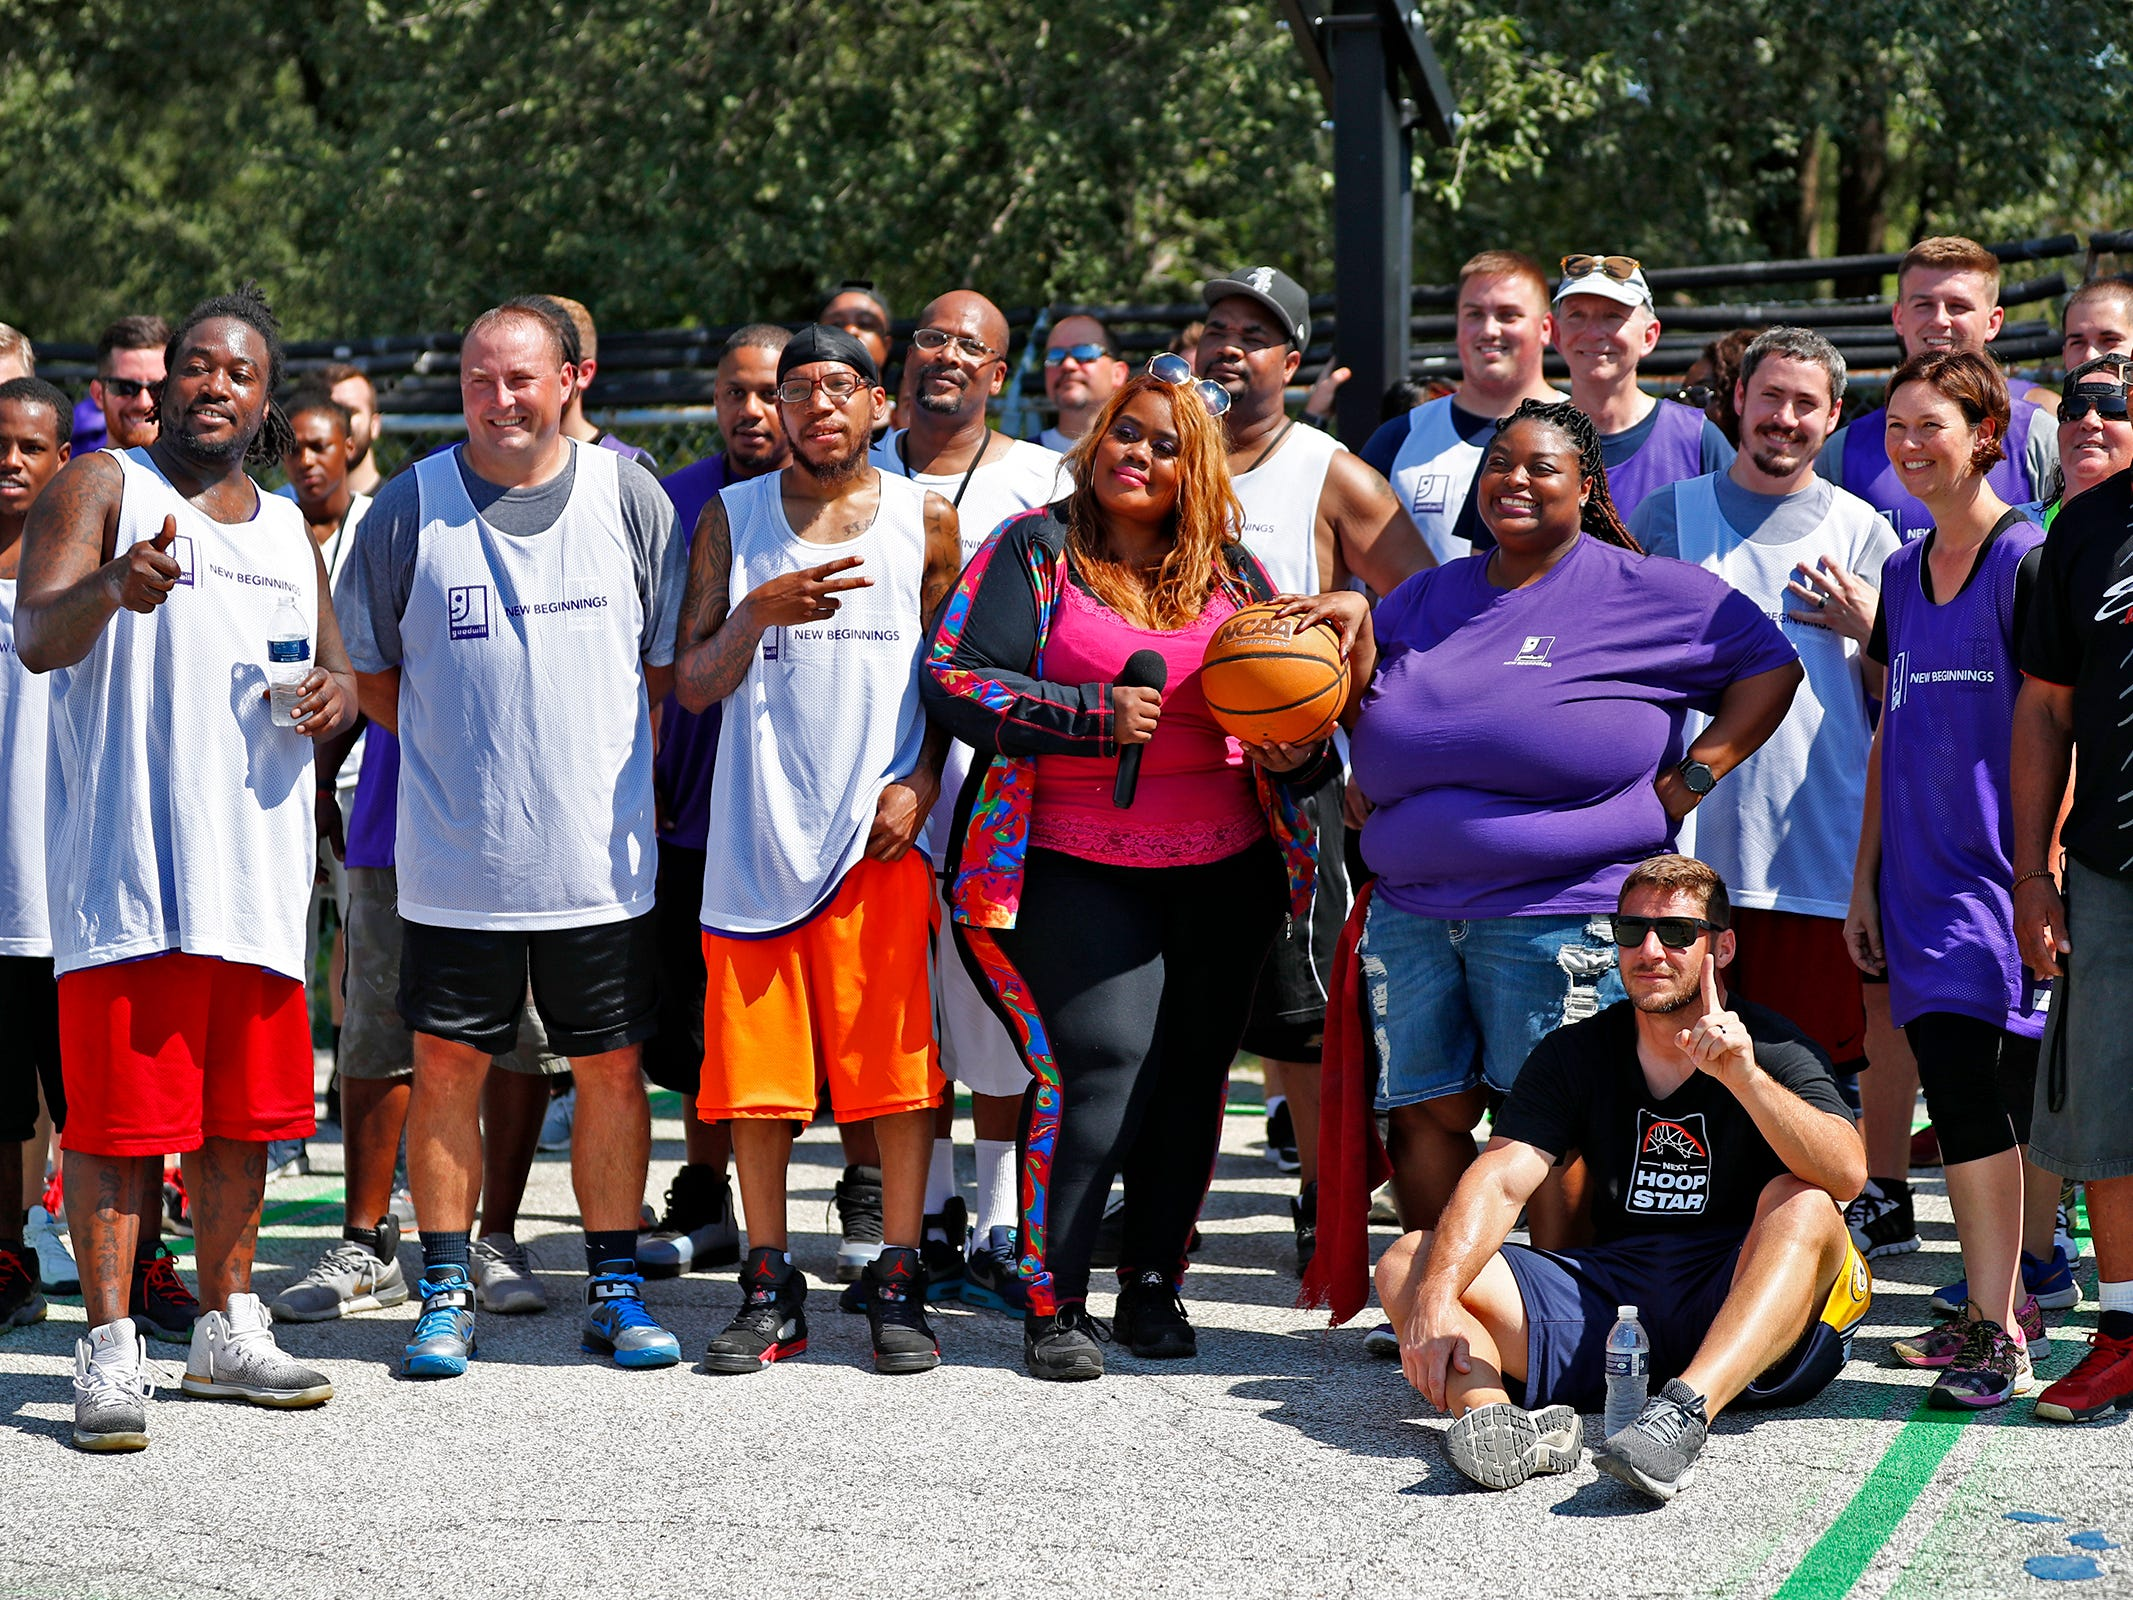 People gather for a group photo after 3-on-3 basketball games at Goodwill Commercial Services, Wednesday, Sept. 19, 2018.  Goodwill Industries of Central Indiana's New Beginnings hosted the 3-on-3 basketball tournament bringing together participants in New Beginnings, a six-month re-entry program for ex-offenders that works on job and life skills, with representatives from Goodwill, IMPD, the Mayor's office, Marion County Probation department and other services.  The goal is to celebrate the New Beginnings program while breaking down re-entry barriers through basketball.